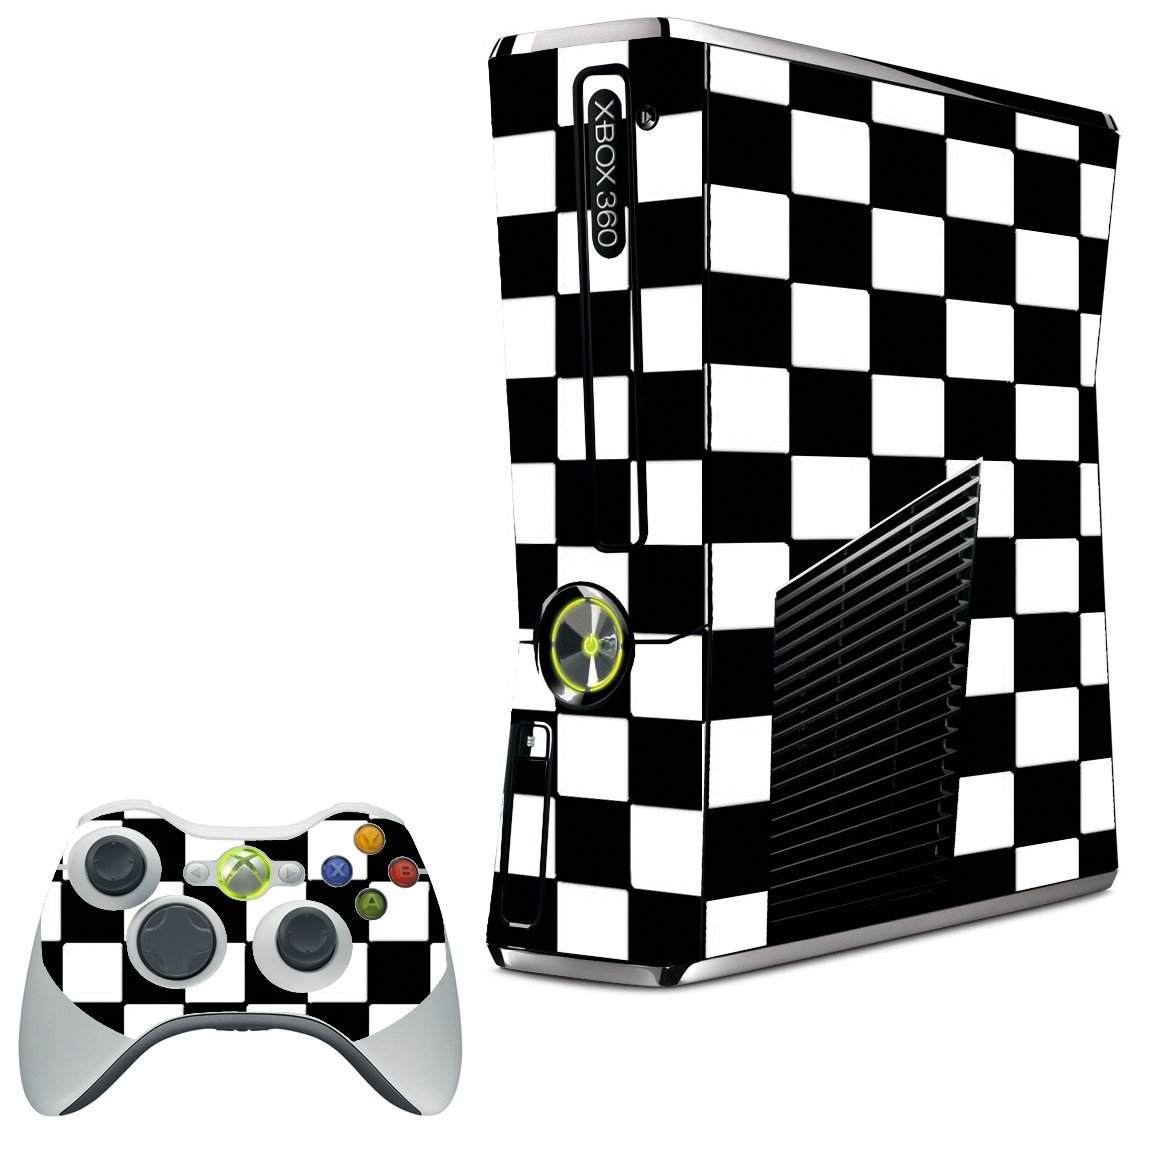 CHECKERED XBOX 360 SLIM GAME CONSOLE SKIN